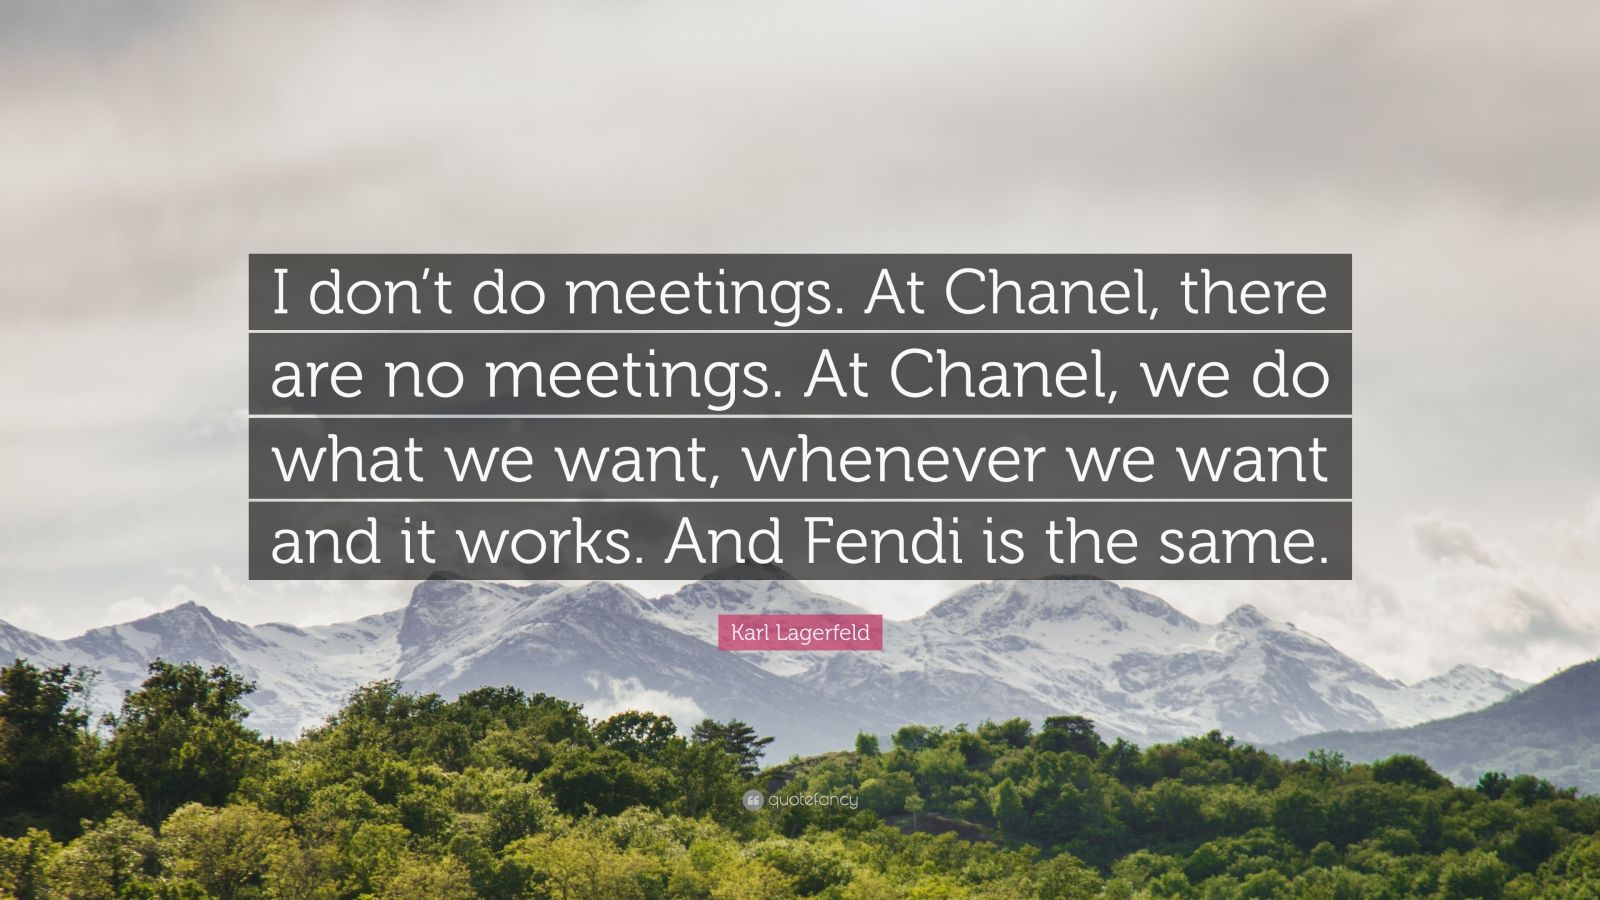 """Karl Lagerfeld Quote: """"I don't do meetings. At Chanel, there are no meetings. At Chanel, we do what we want, whenever we want and it works. And Fendi is the same."""""""